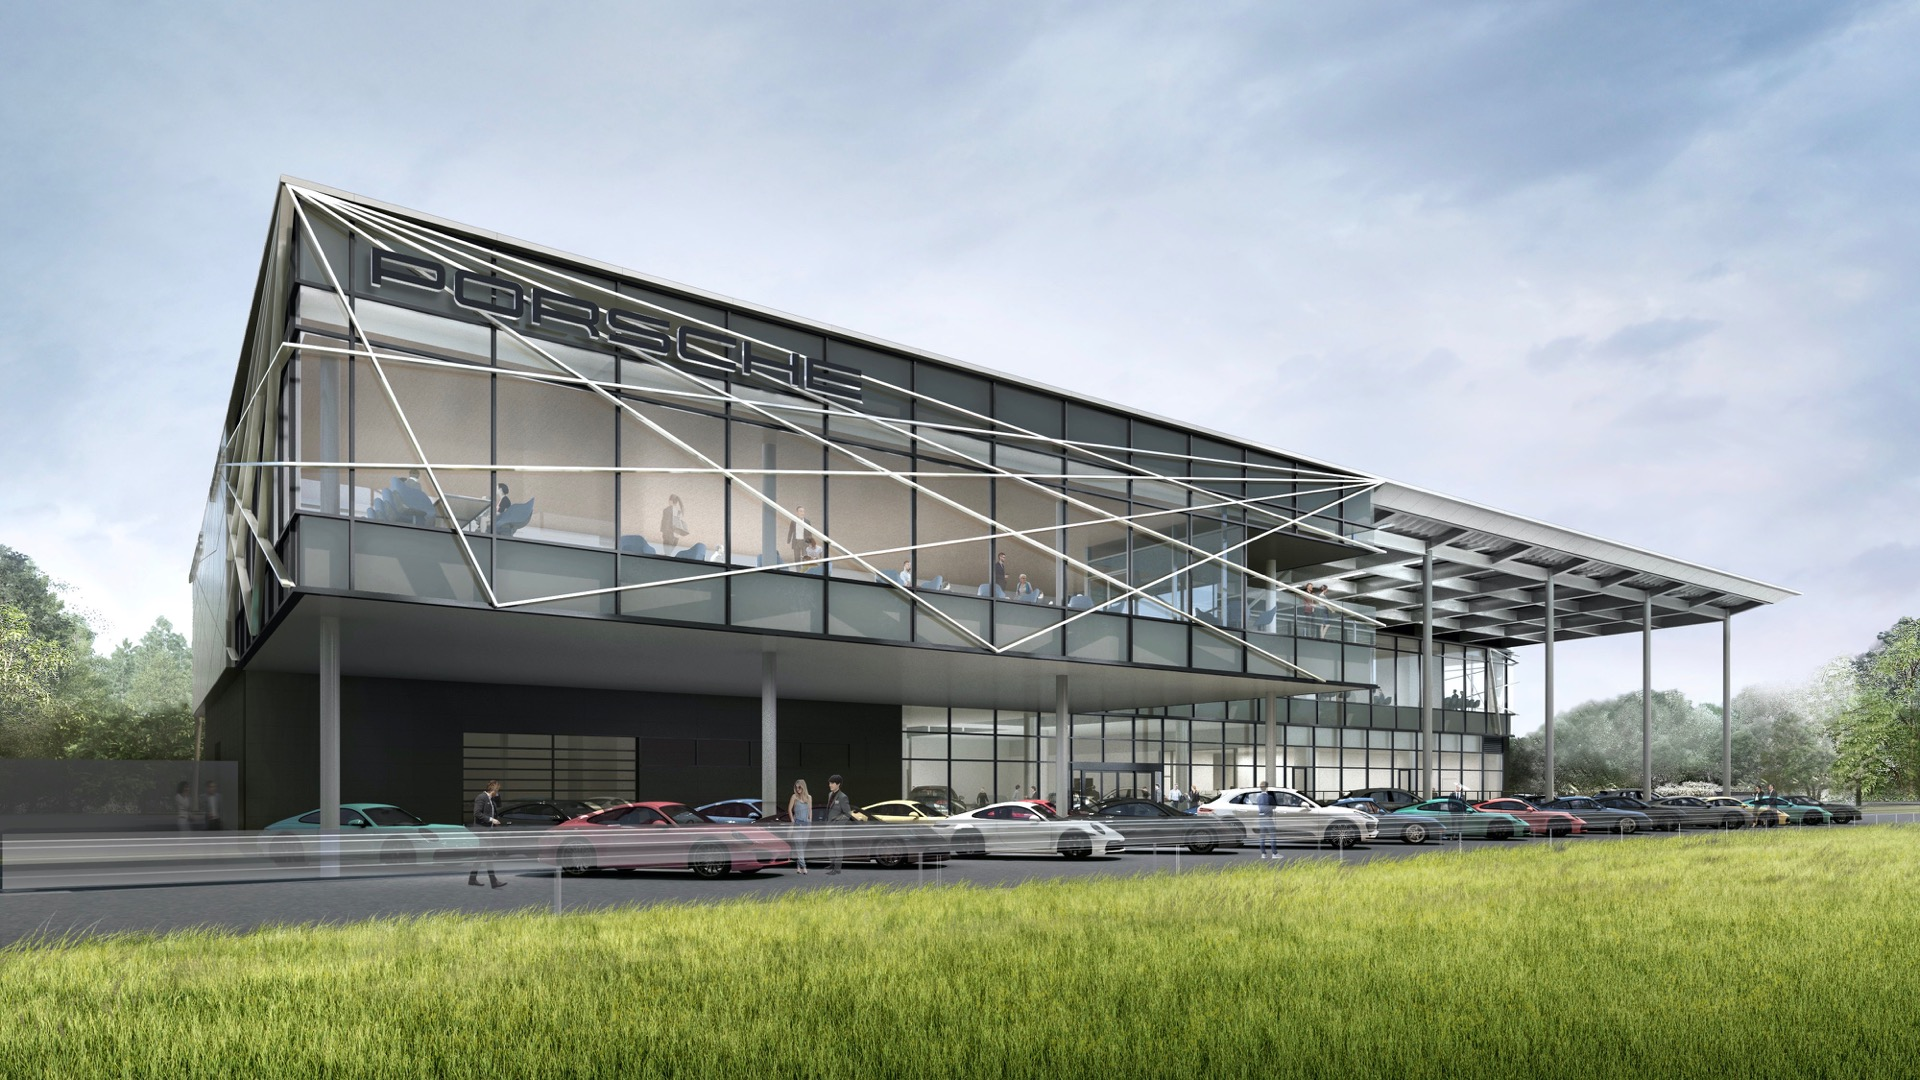 Latest Porsche Experience Center to be built in Japan